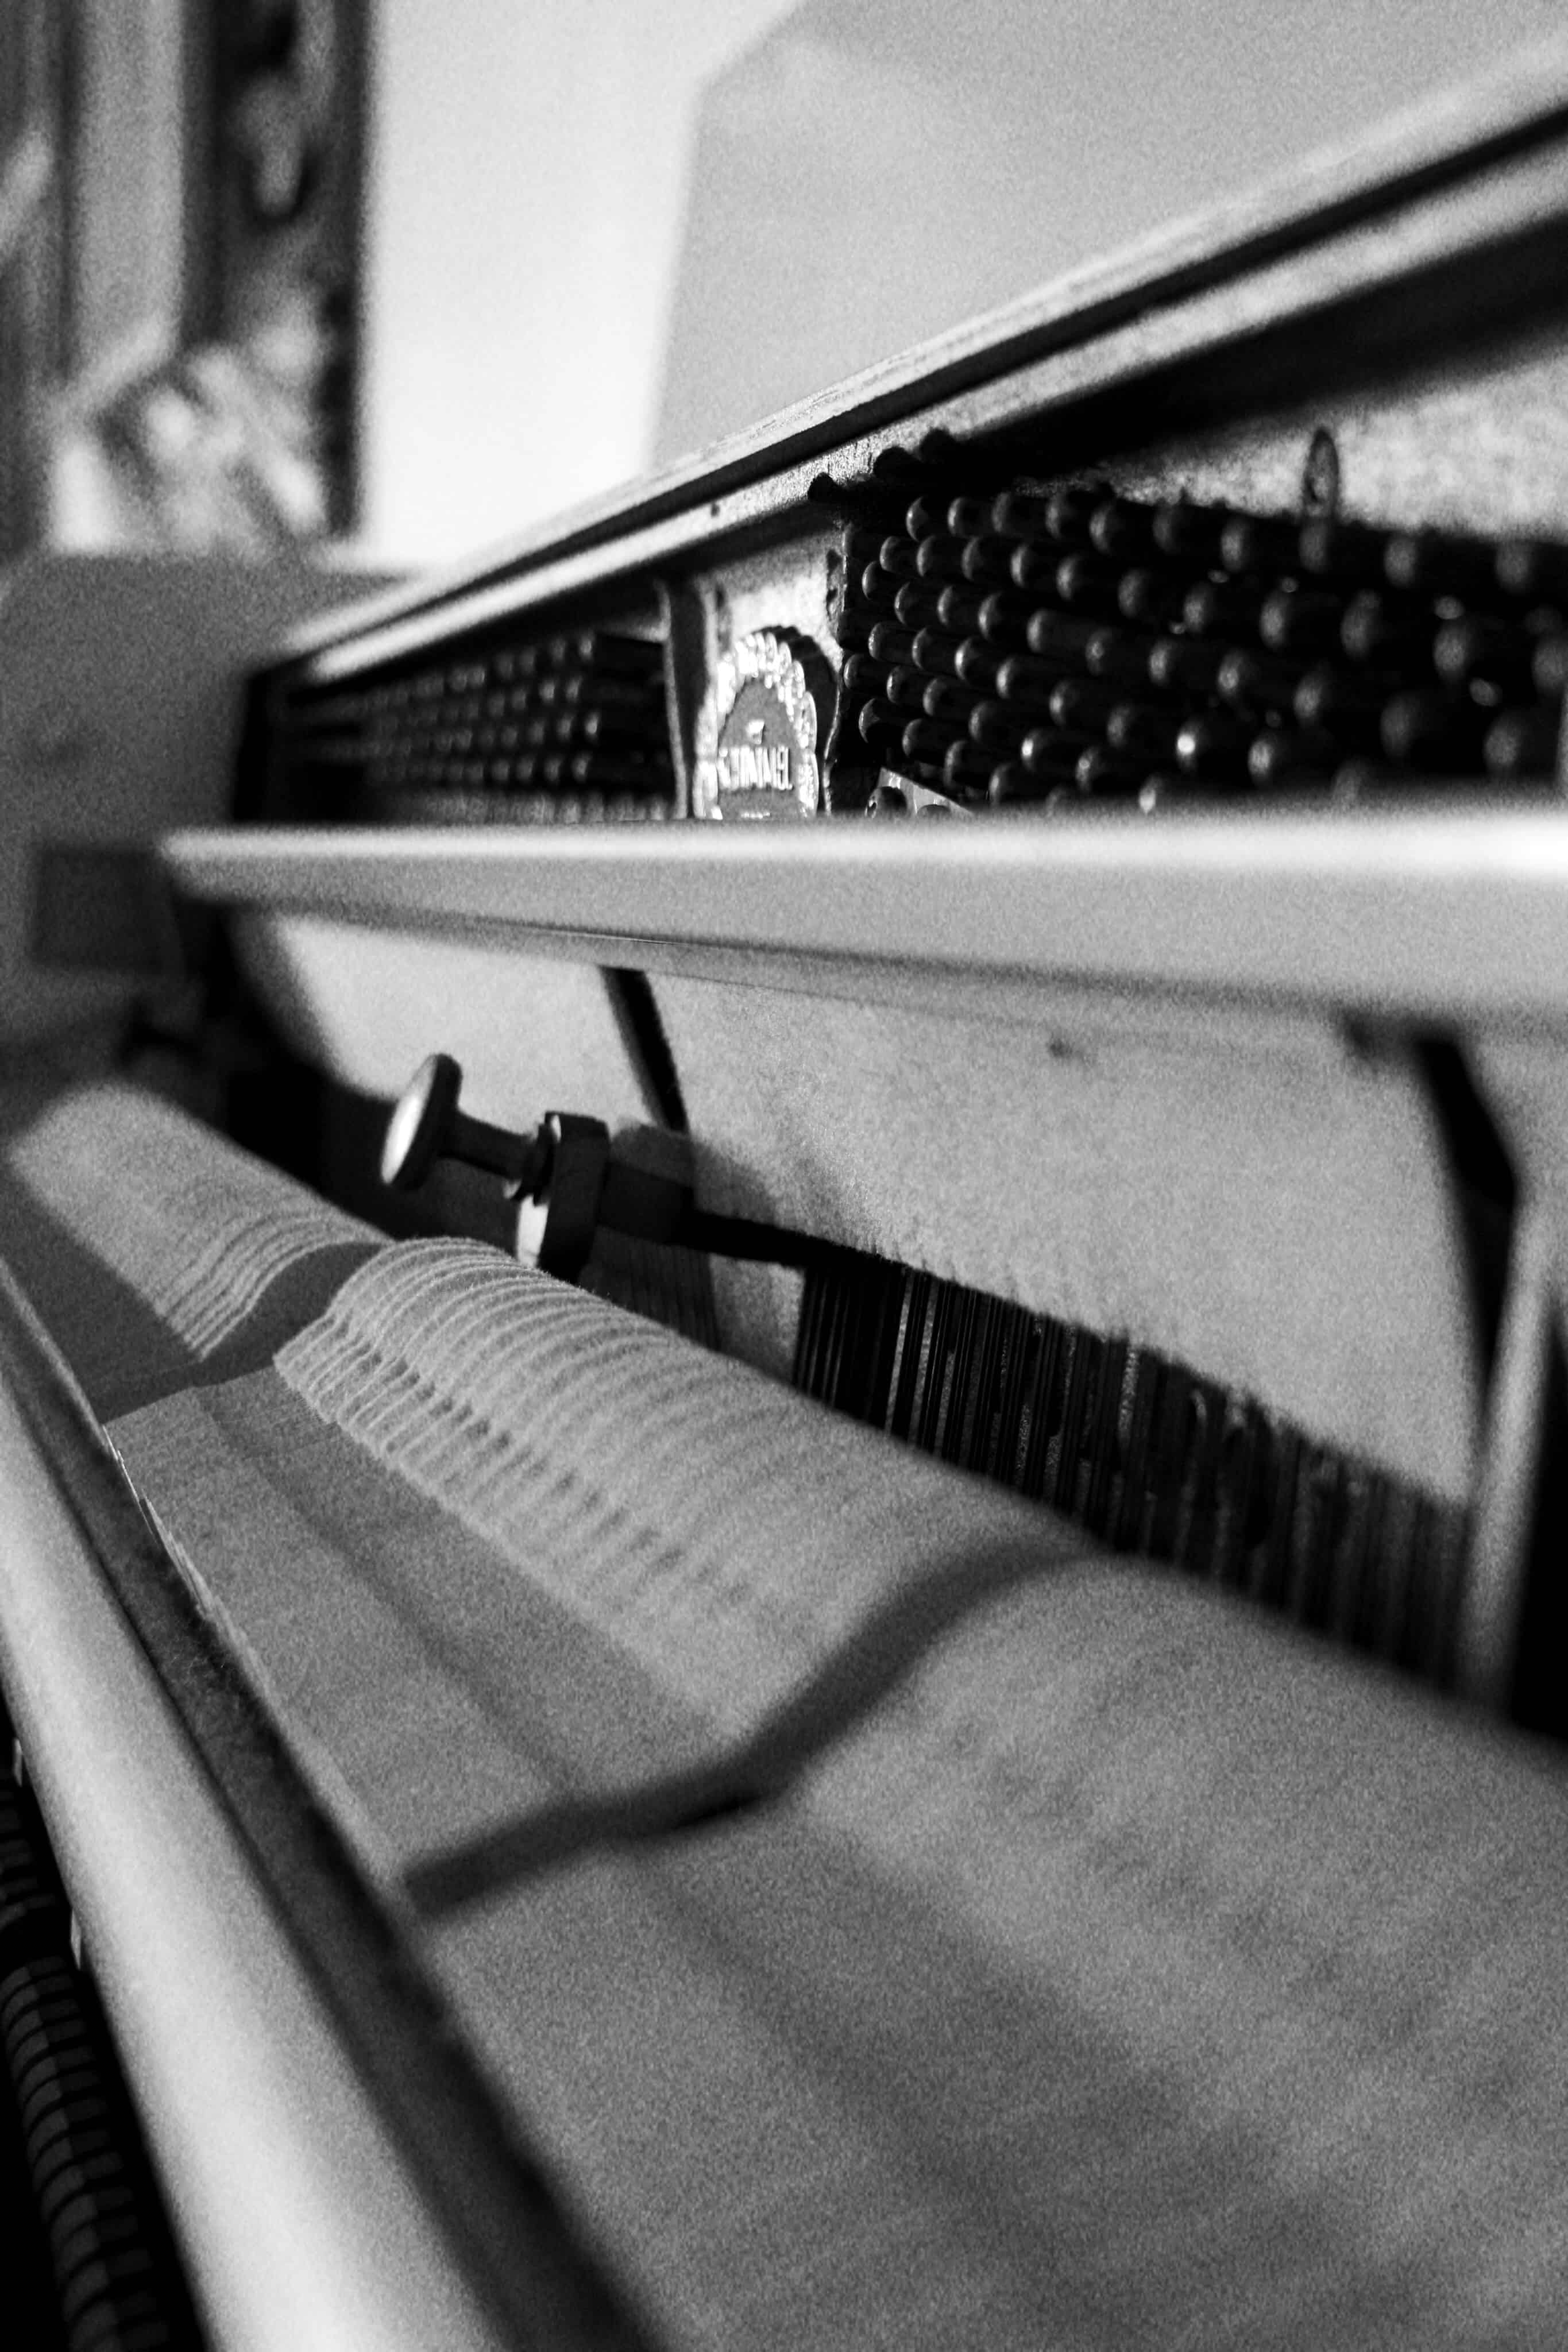 A black and white photograph of a piano